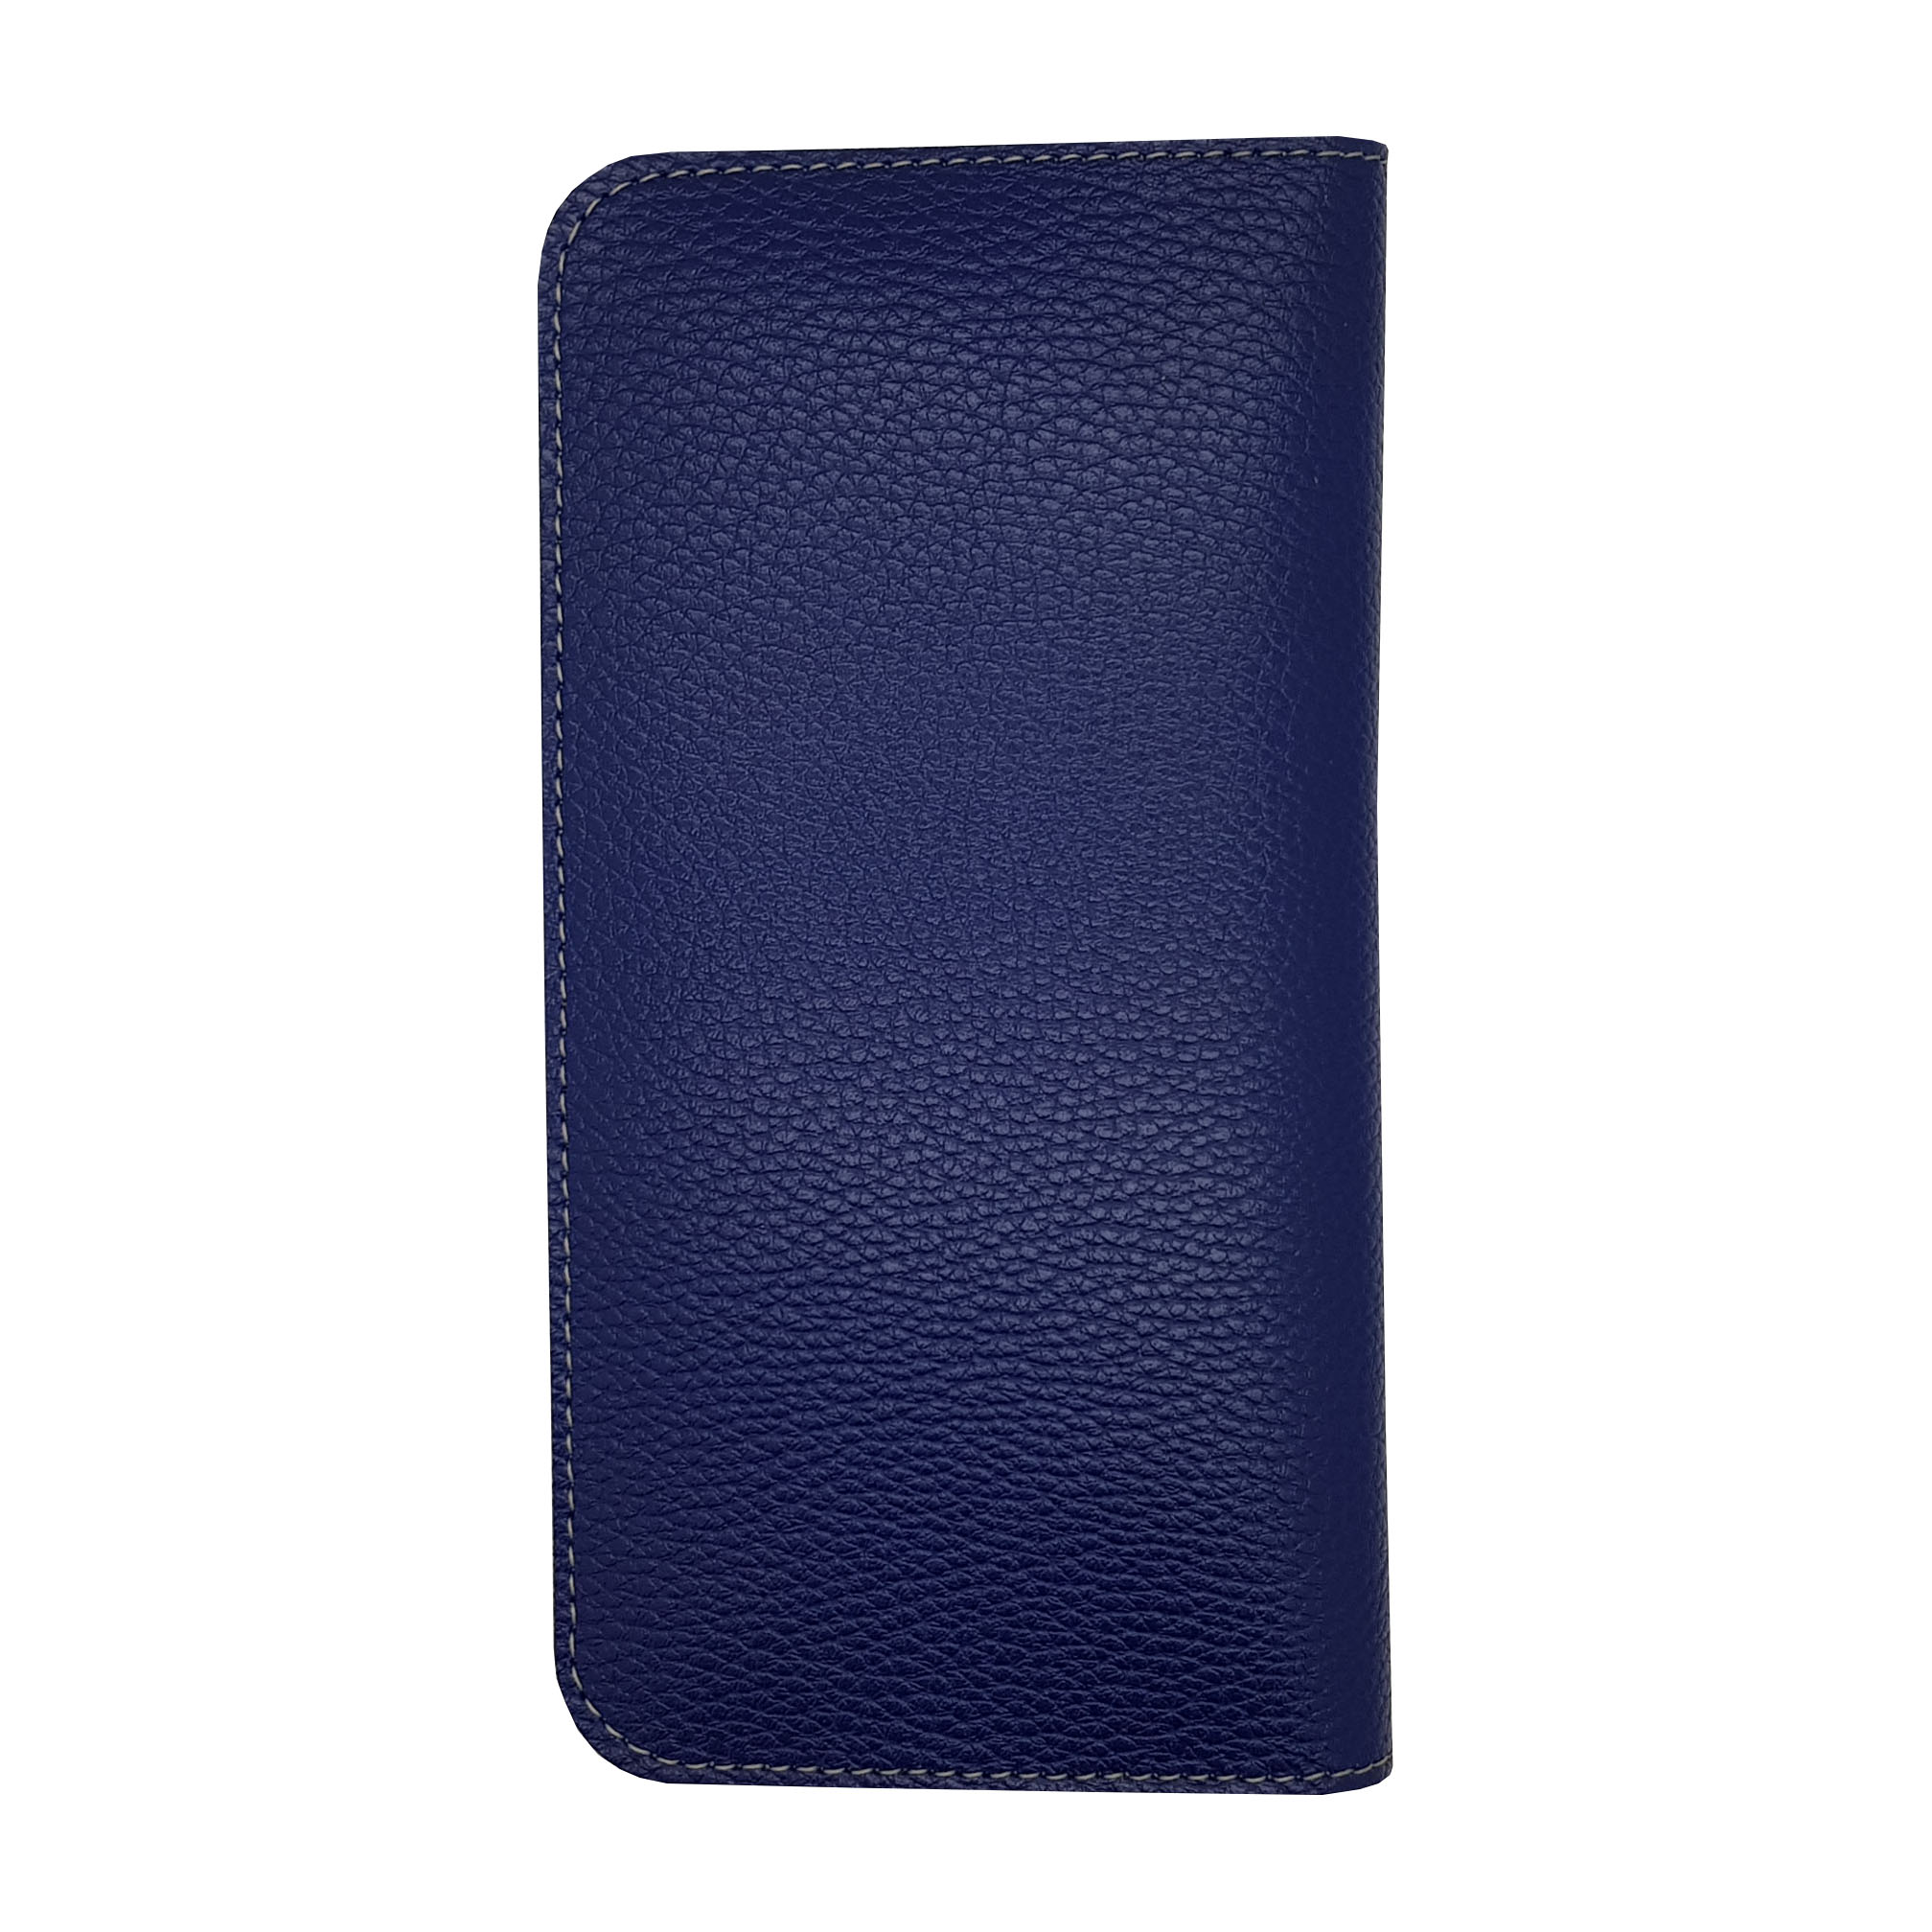 DIYAKO artificial leather wallet, Model 258